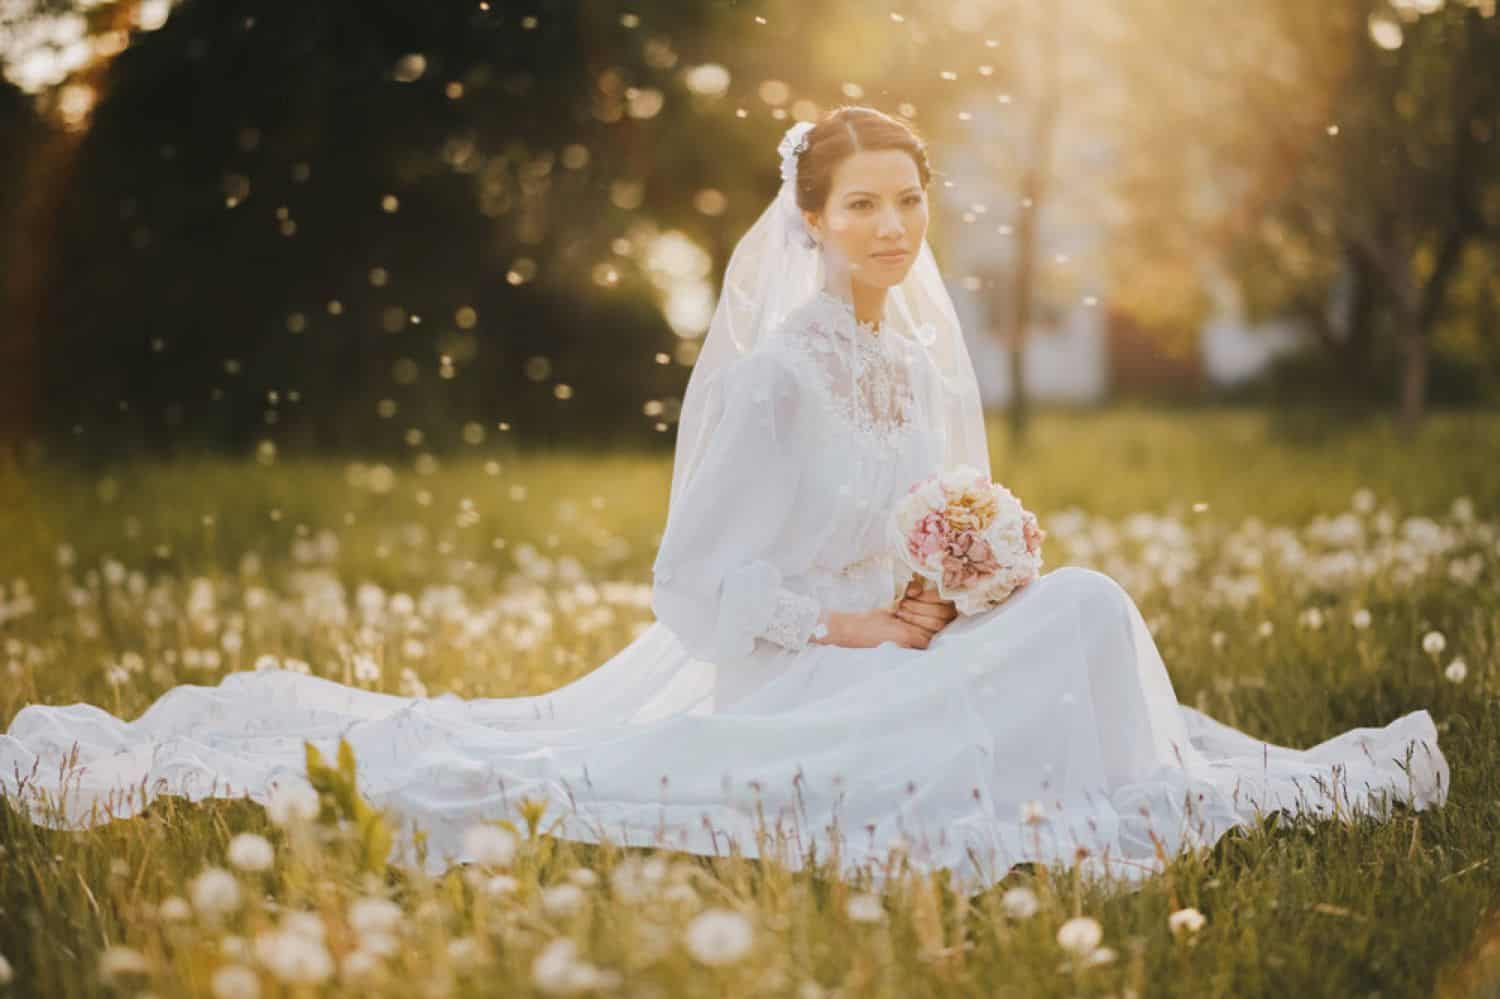 A bride kneels in a field for a sunset portrait